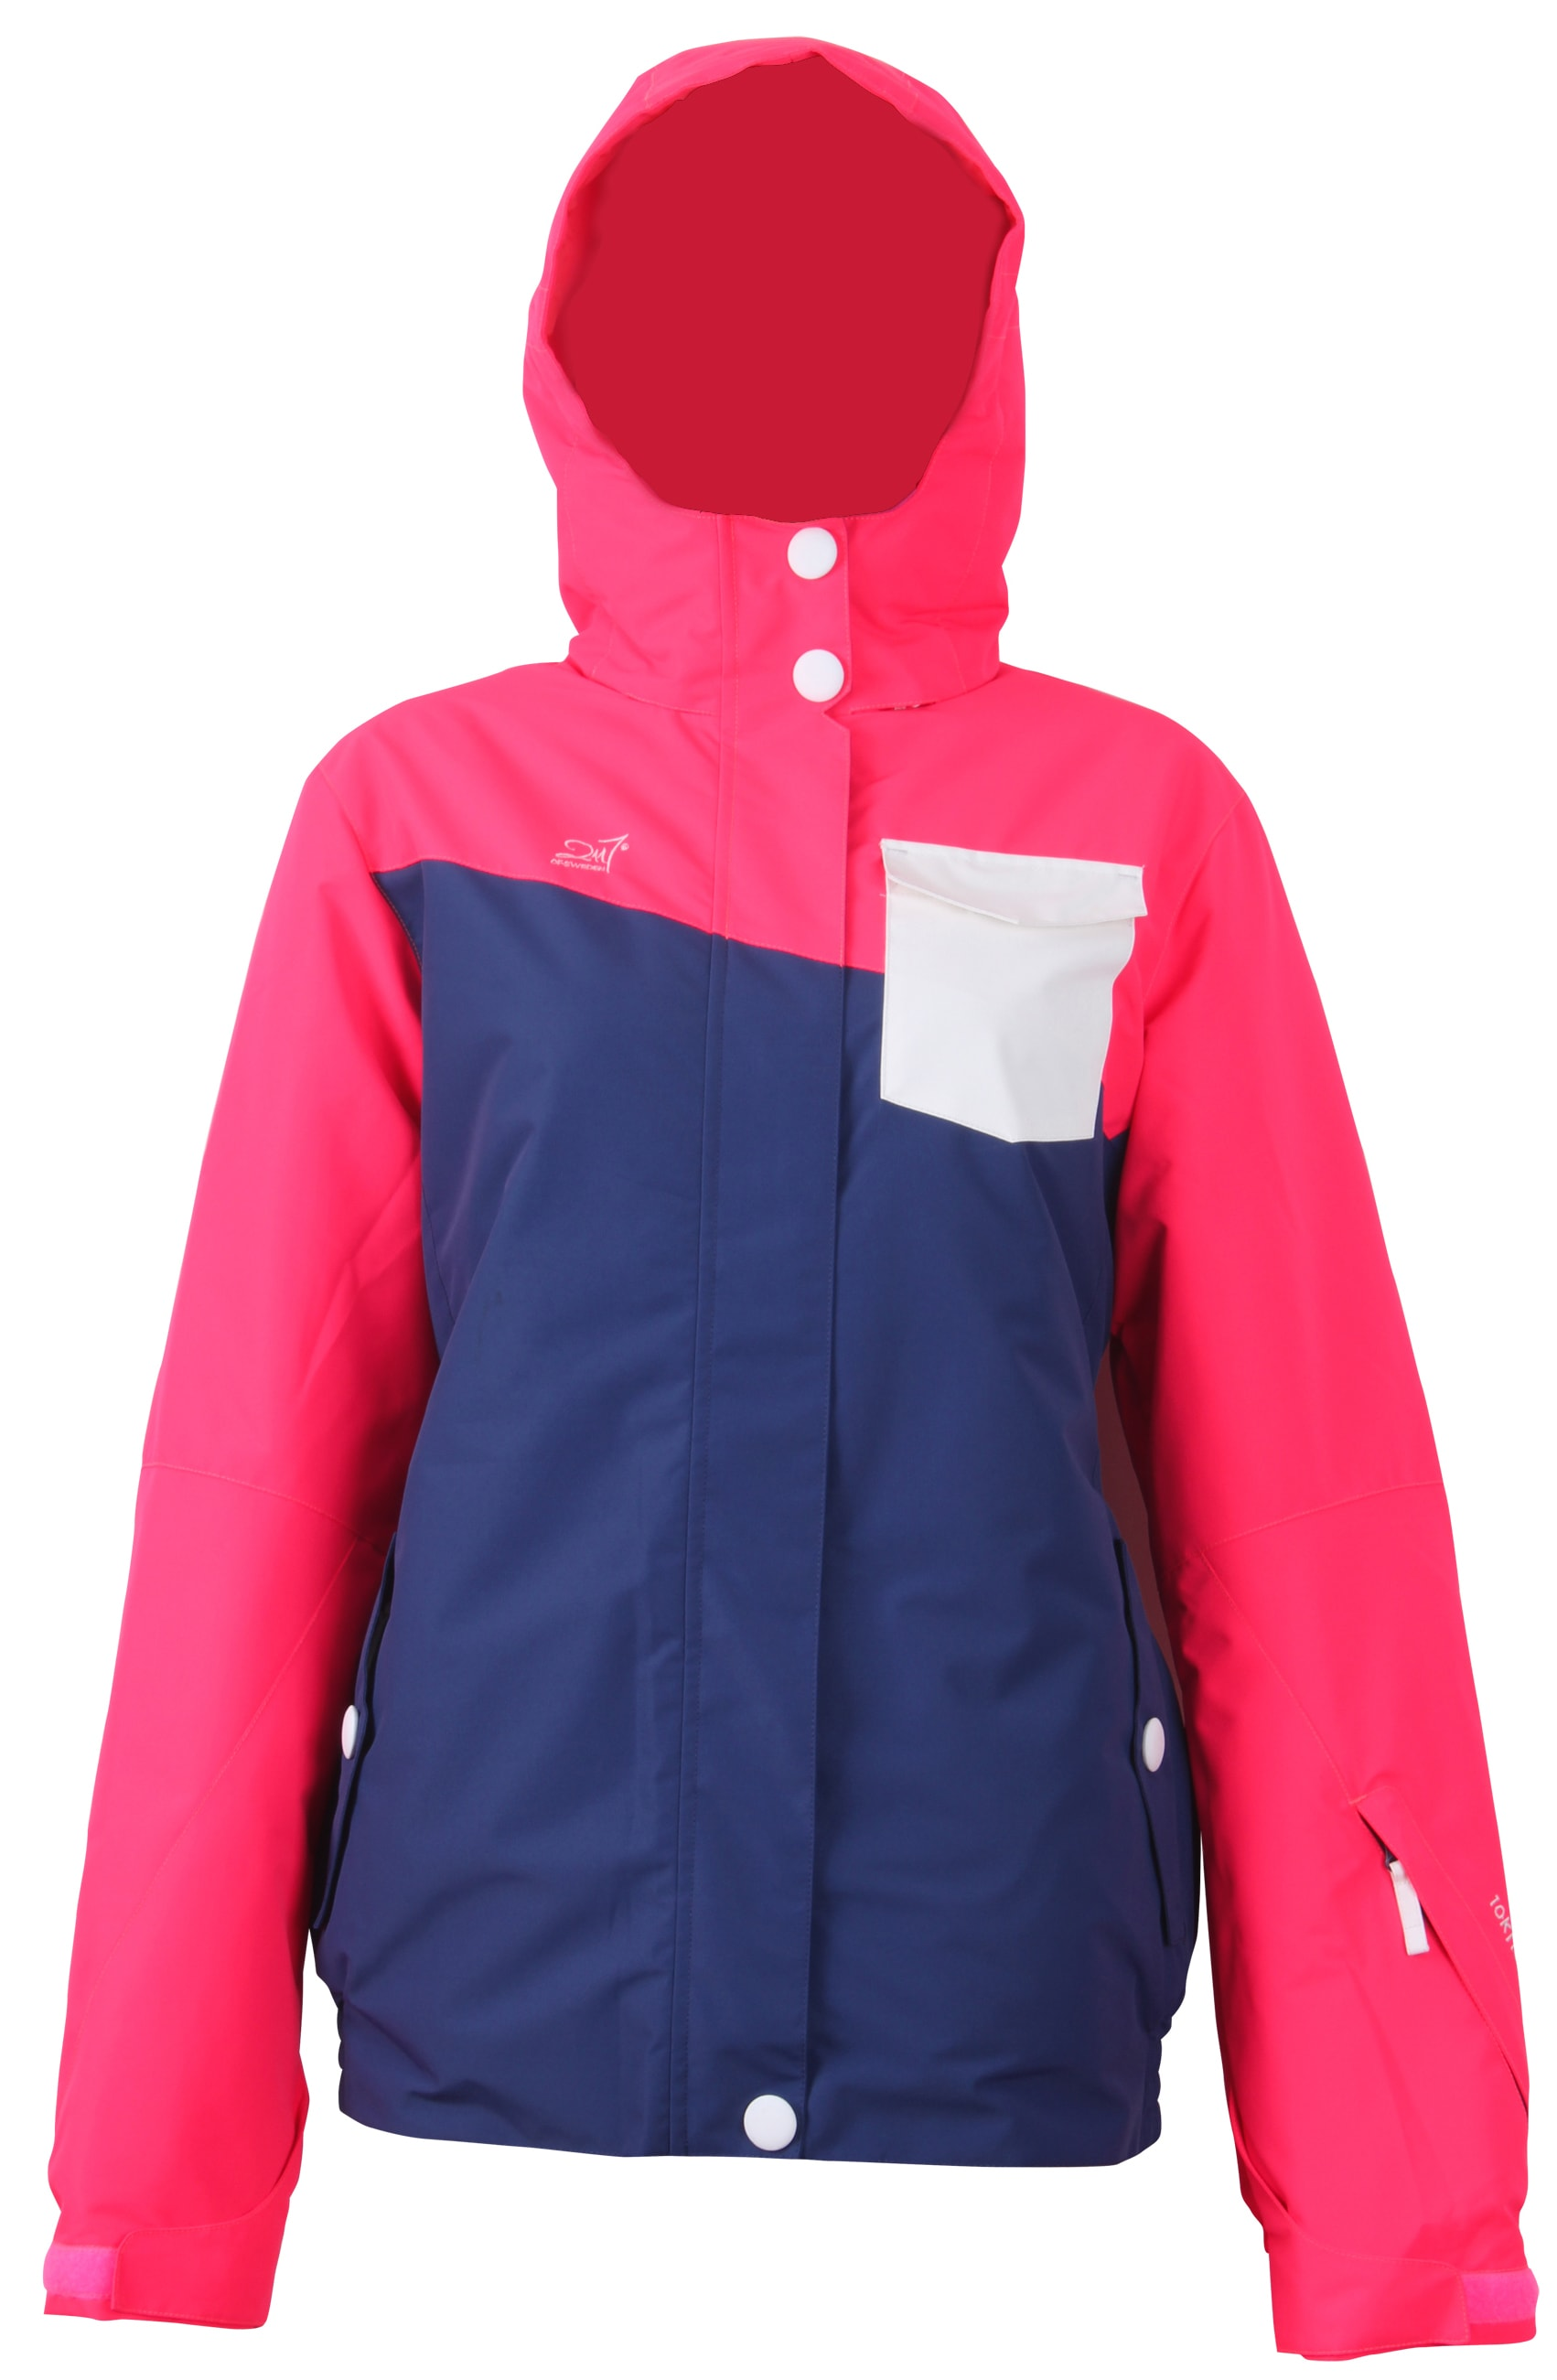 On Sale Womens Ski Jackets - Ski Jacket - Skiing Coats